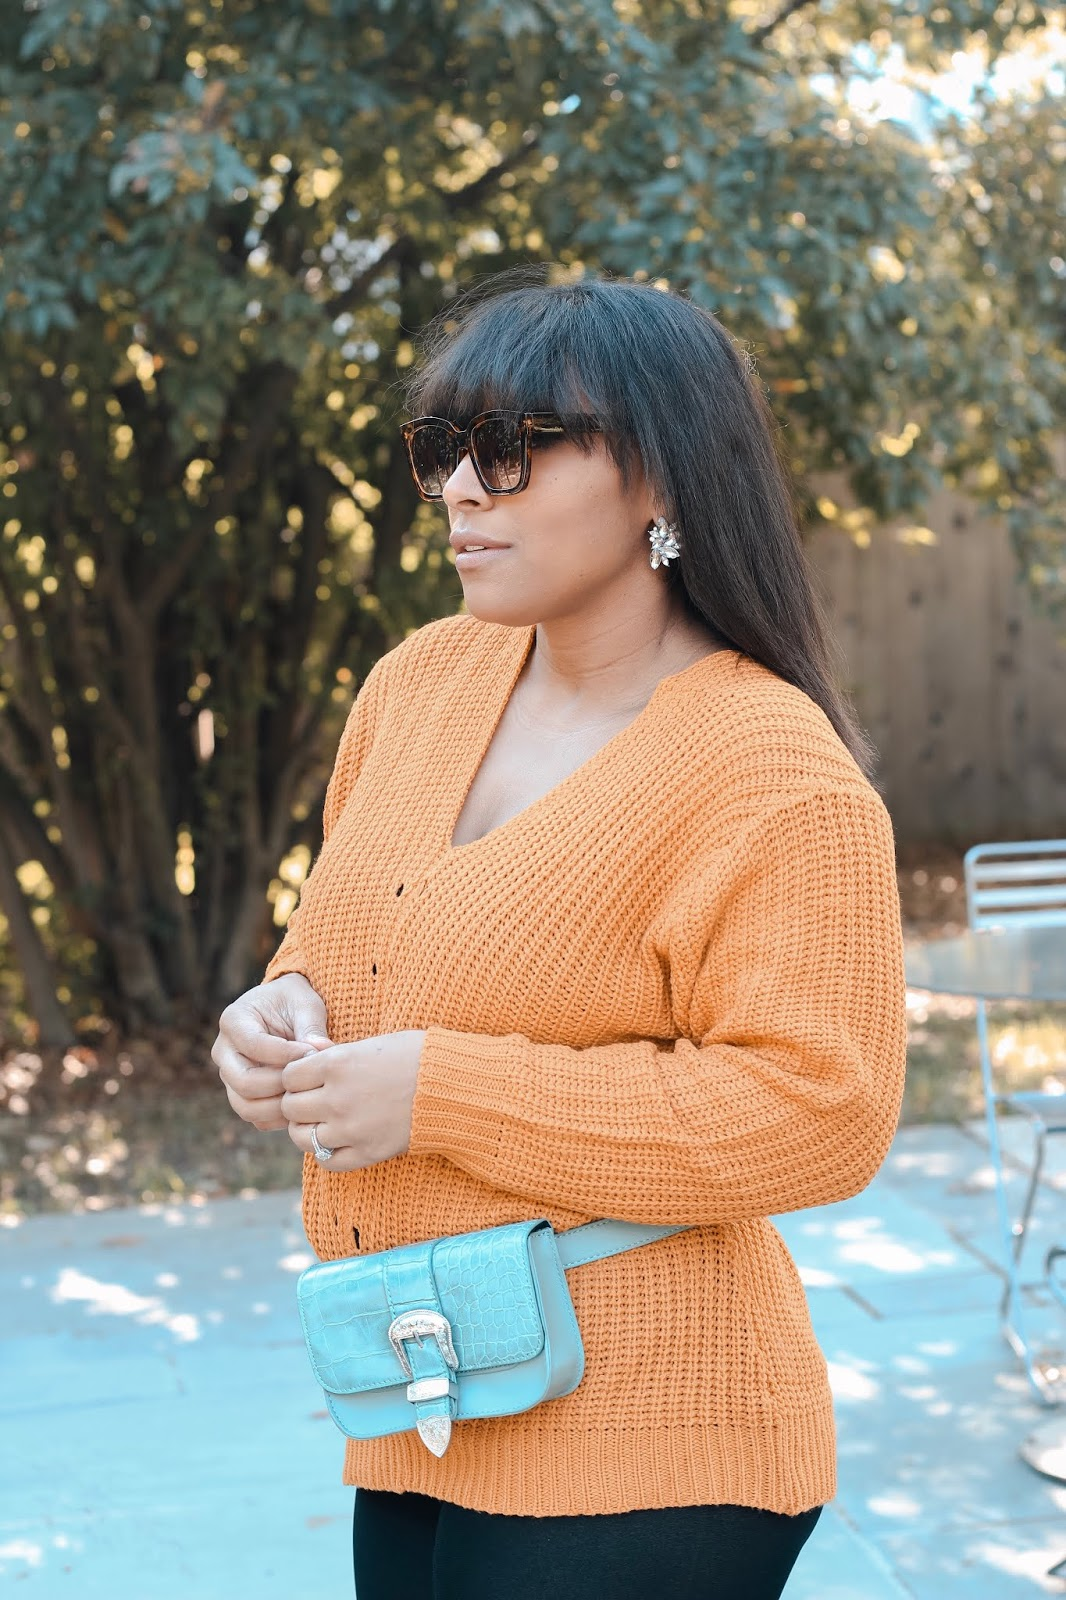 Mom blogger, new mom, fall fashion, fall outfits, fanny pack